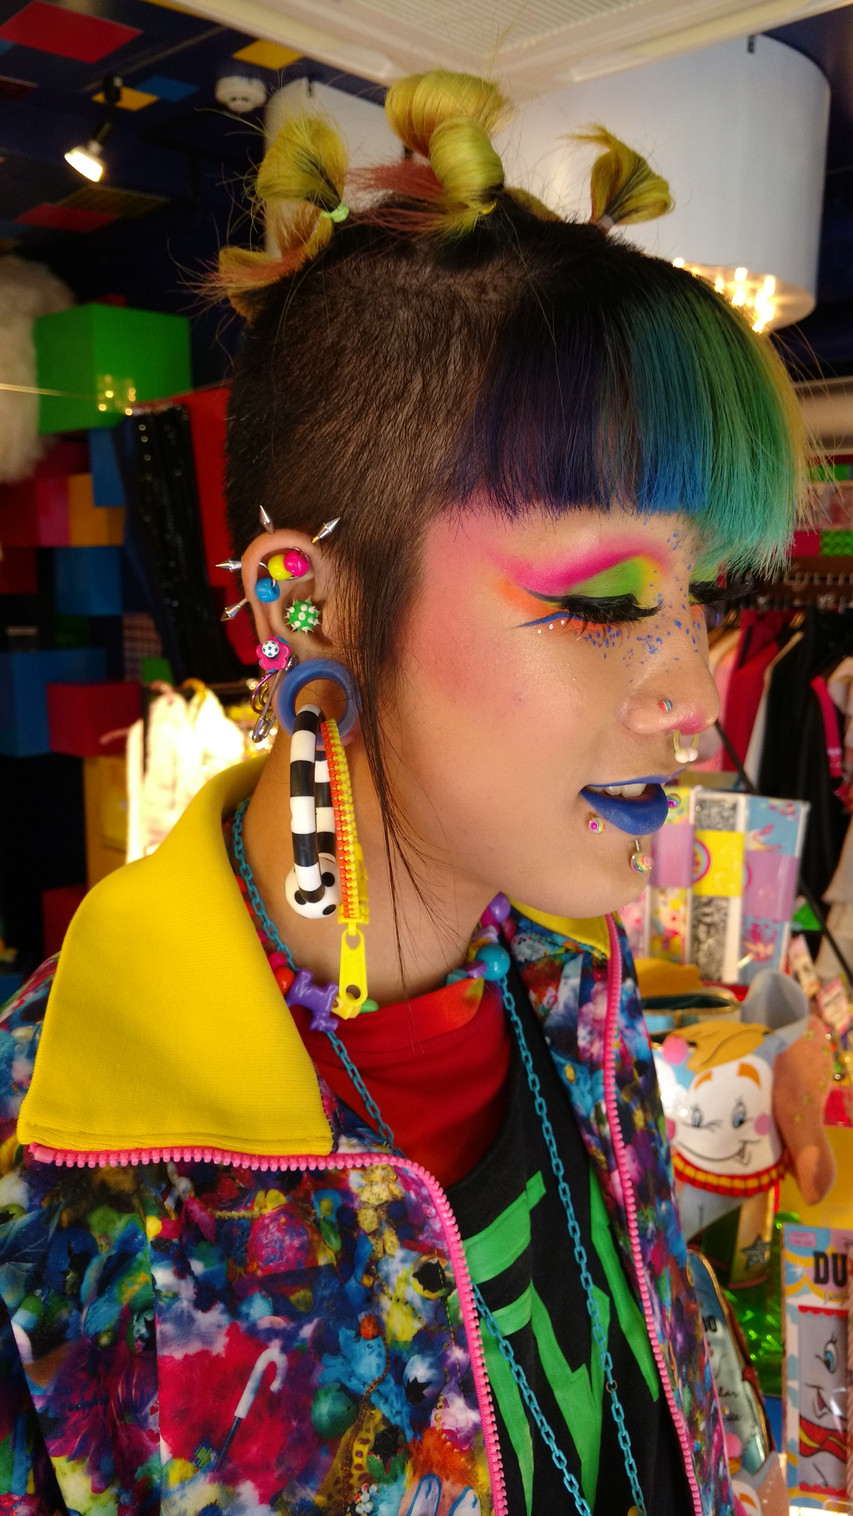 His colourful hair and fun make up match perfectly with all his earrings!